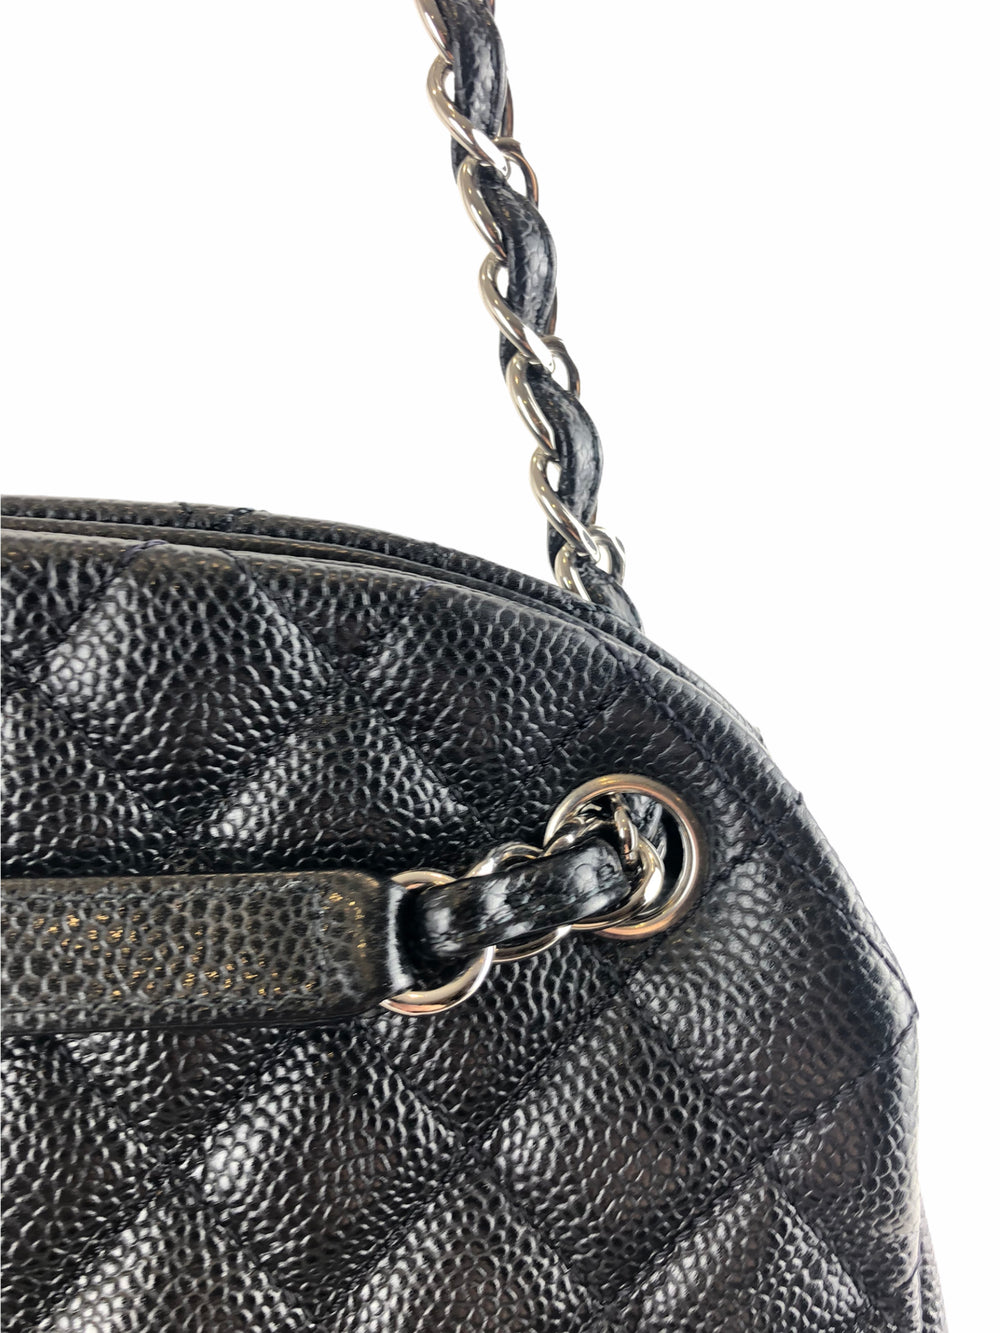 Chanel Black Caviar Leather Tote - As Seen on Instagram